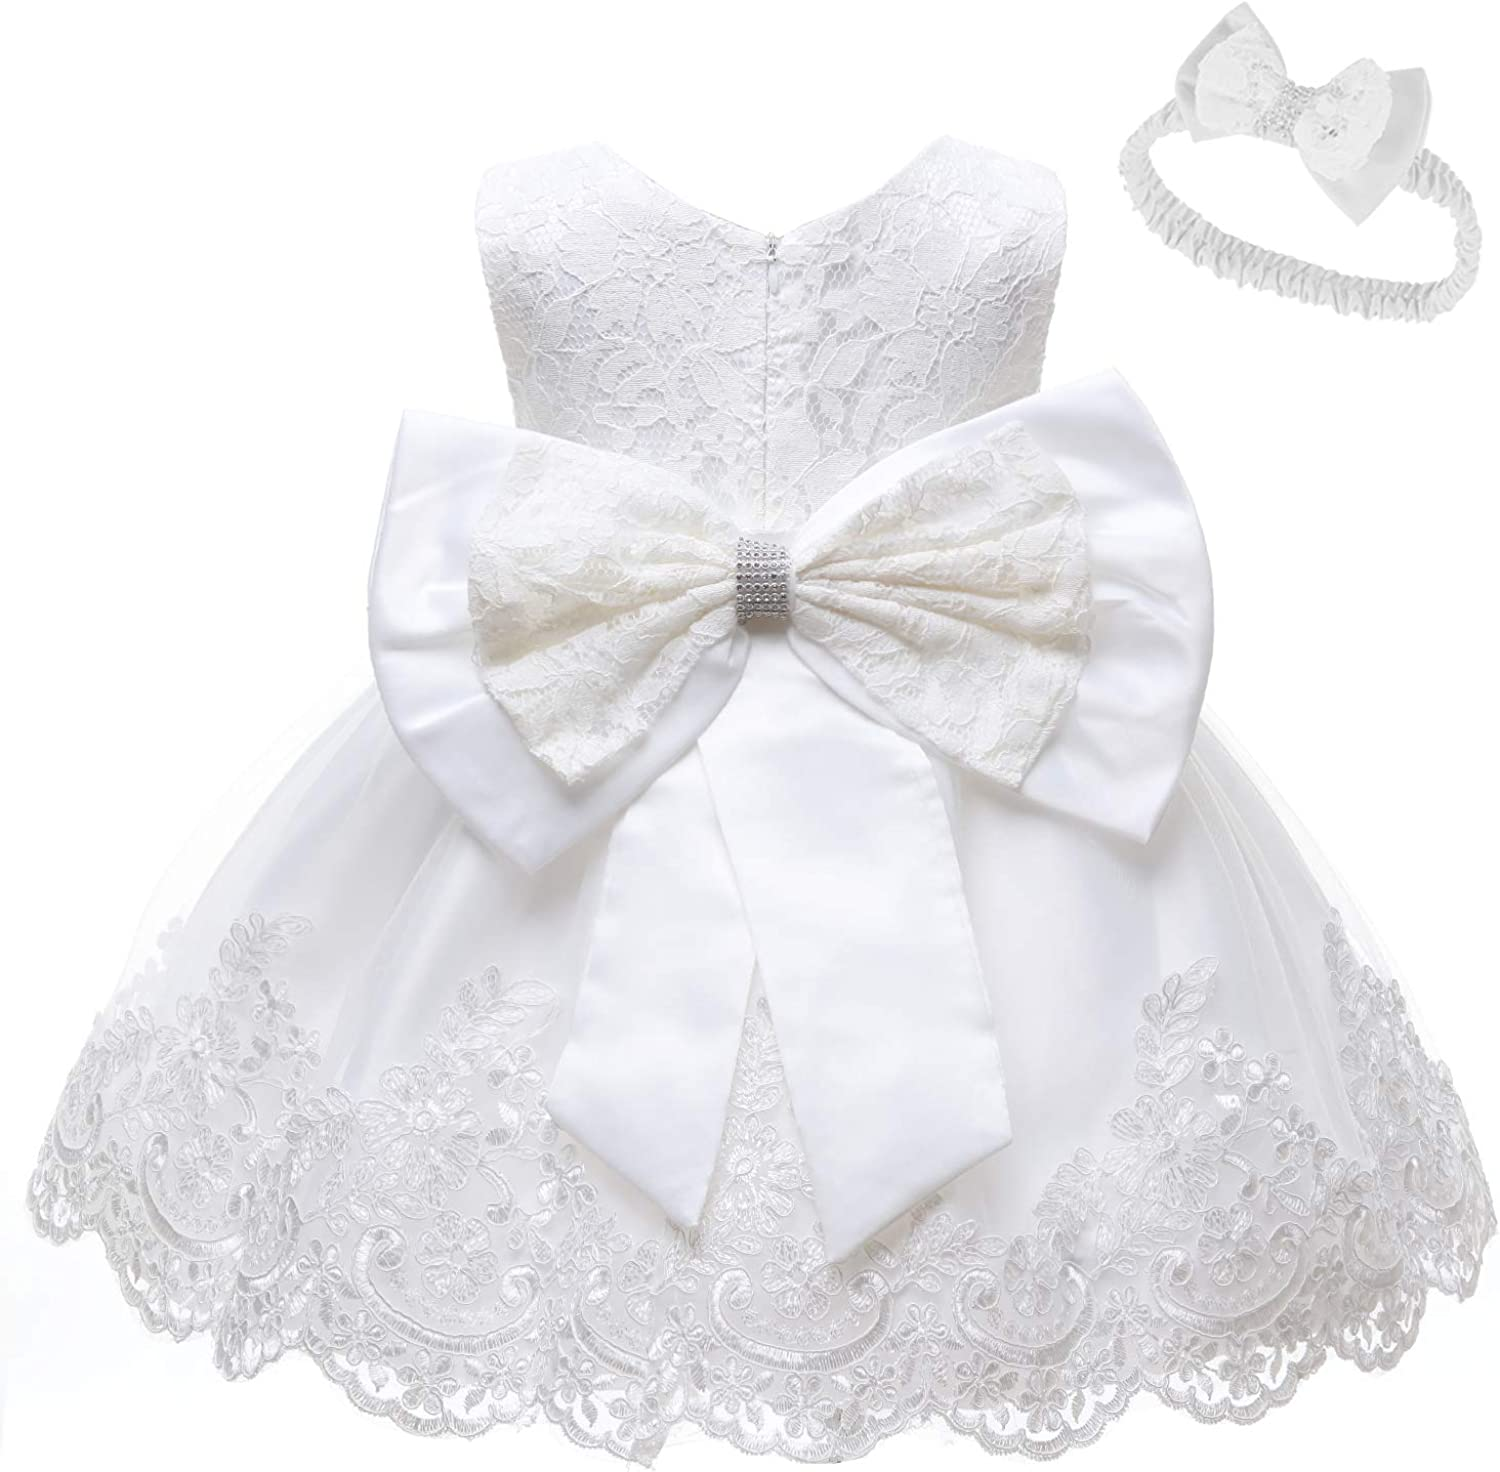 LZH Baby Max 58% OFF Girls Lace Dress Flower Bowknot Pageant Cheap sale Dresses Wedding